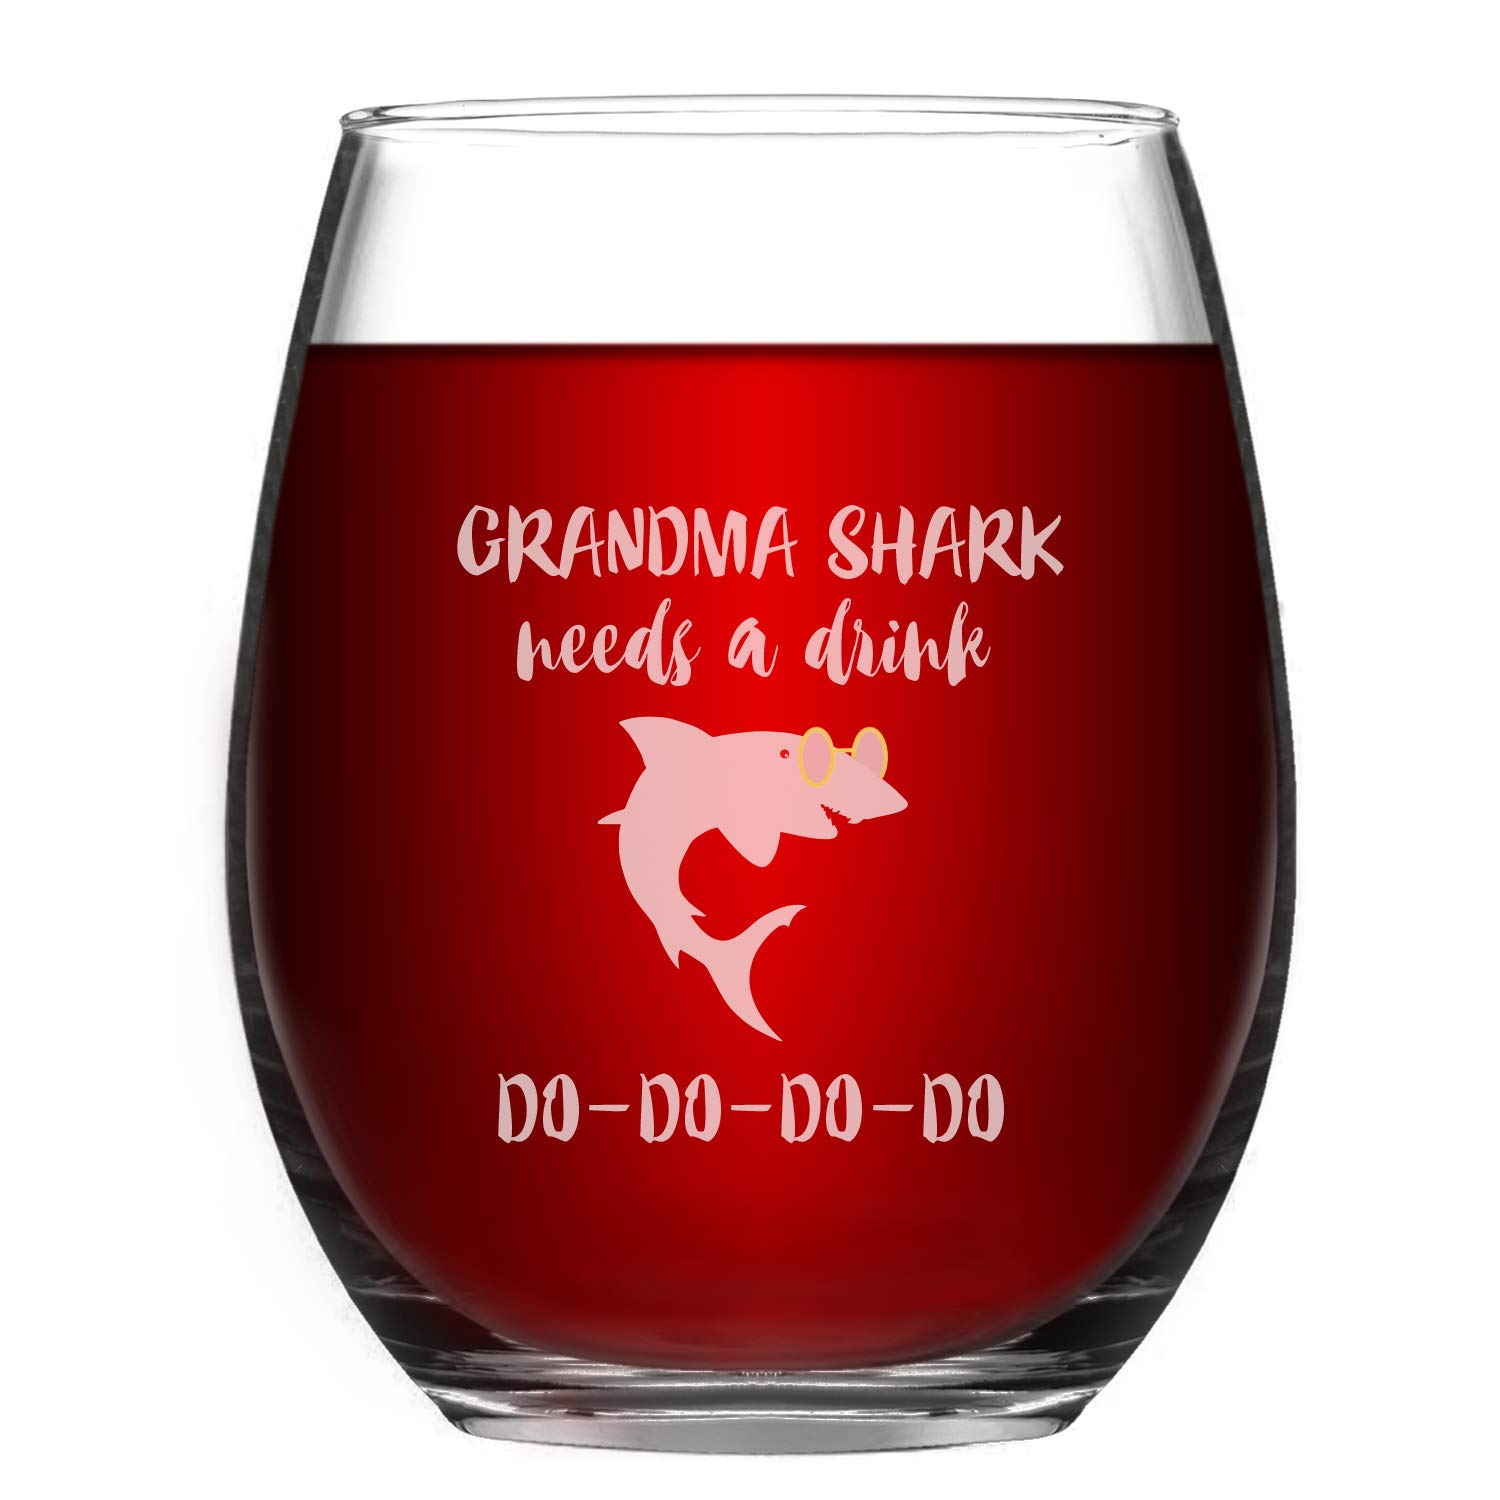 Grandma Wine Glass Grandma Shark Needs a Drink Do Do Novelty Wine Glass for Women with Sayings Funny Stemless Wine Glass Funny Shark Gifts & Cup Accessories for Shark Lovers  Grandma MIL Mom Mama Moth